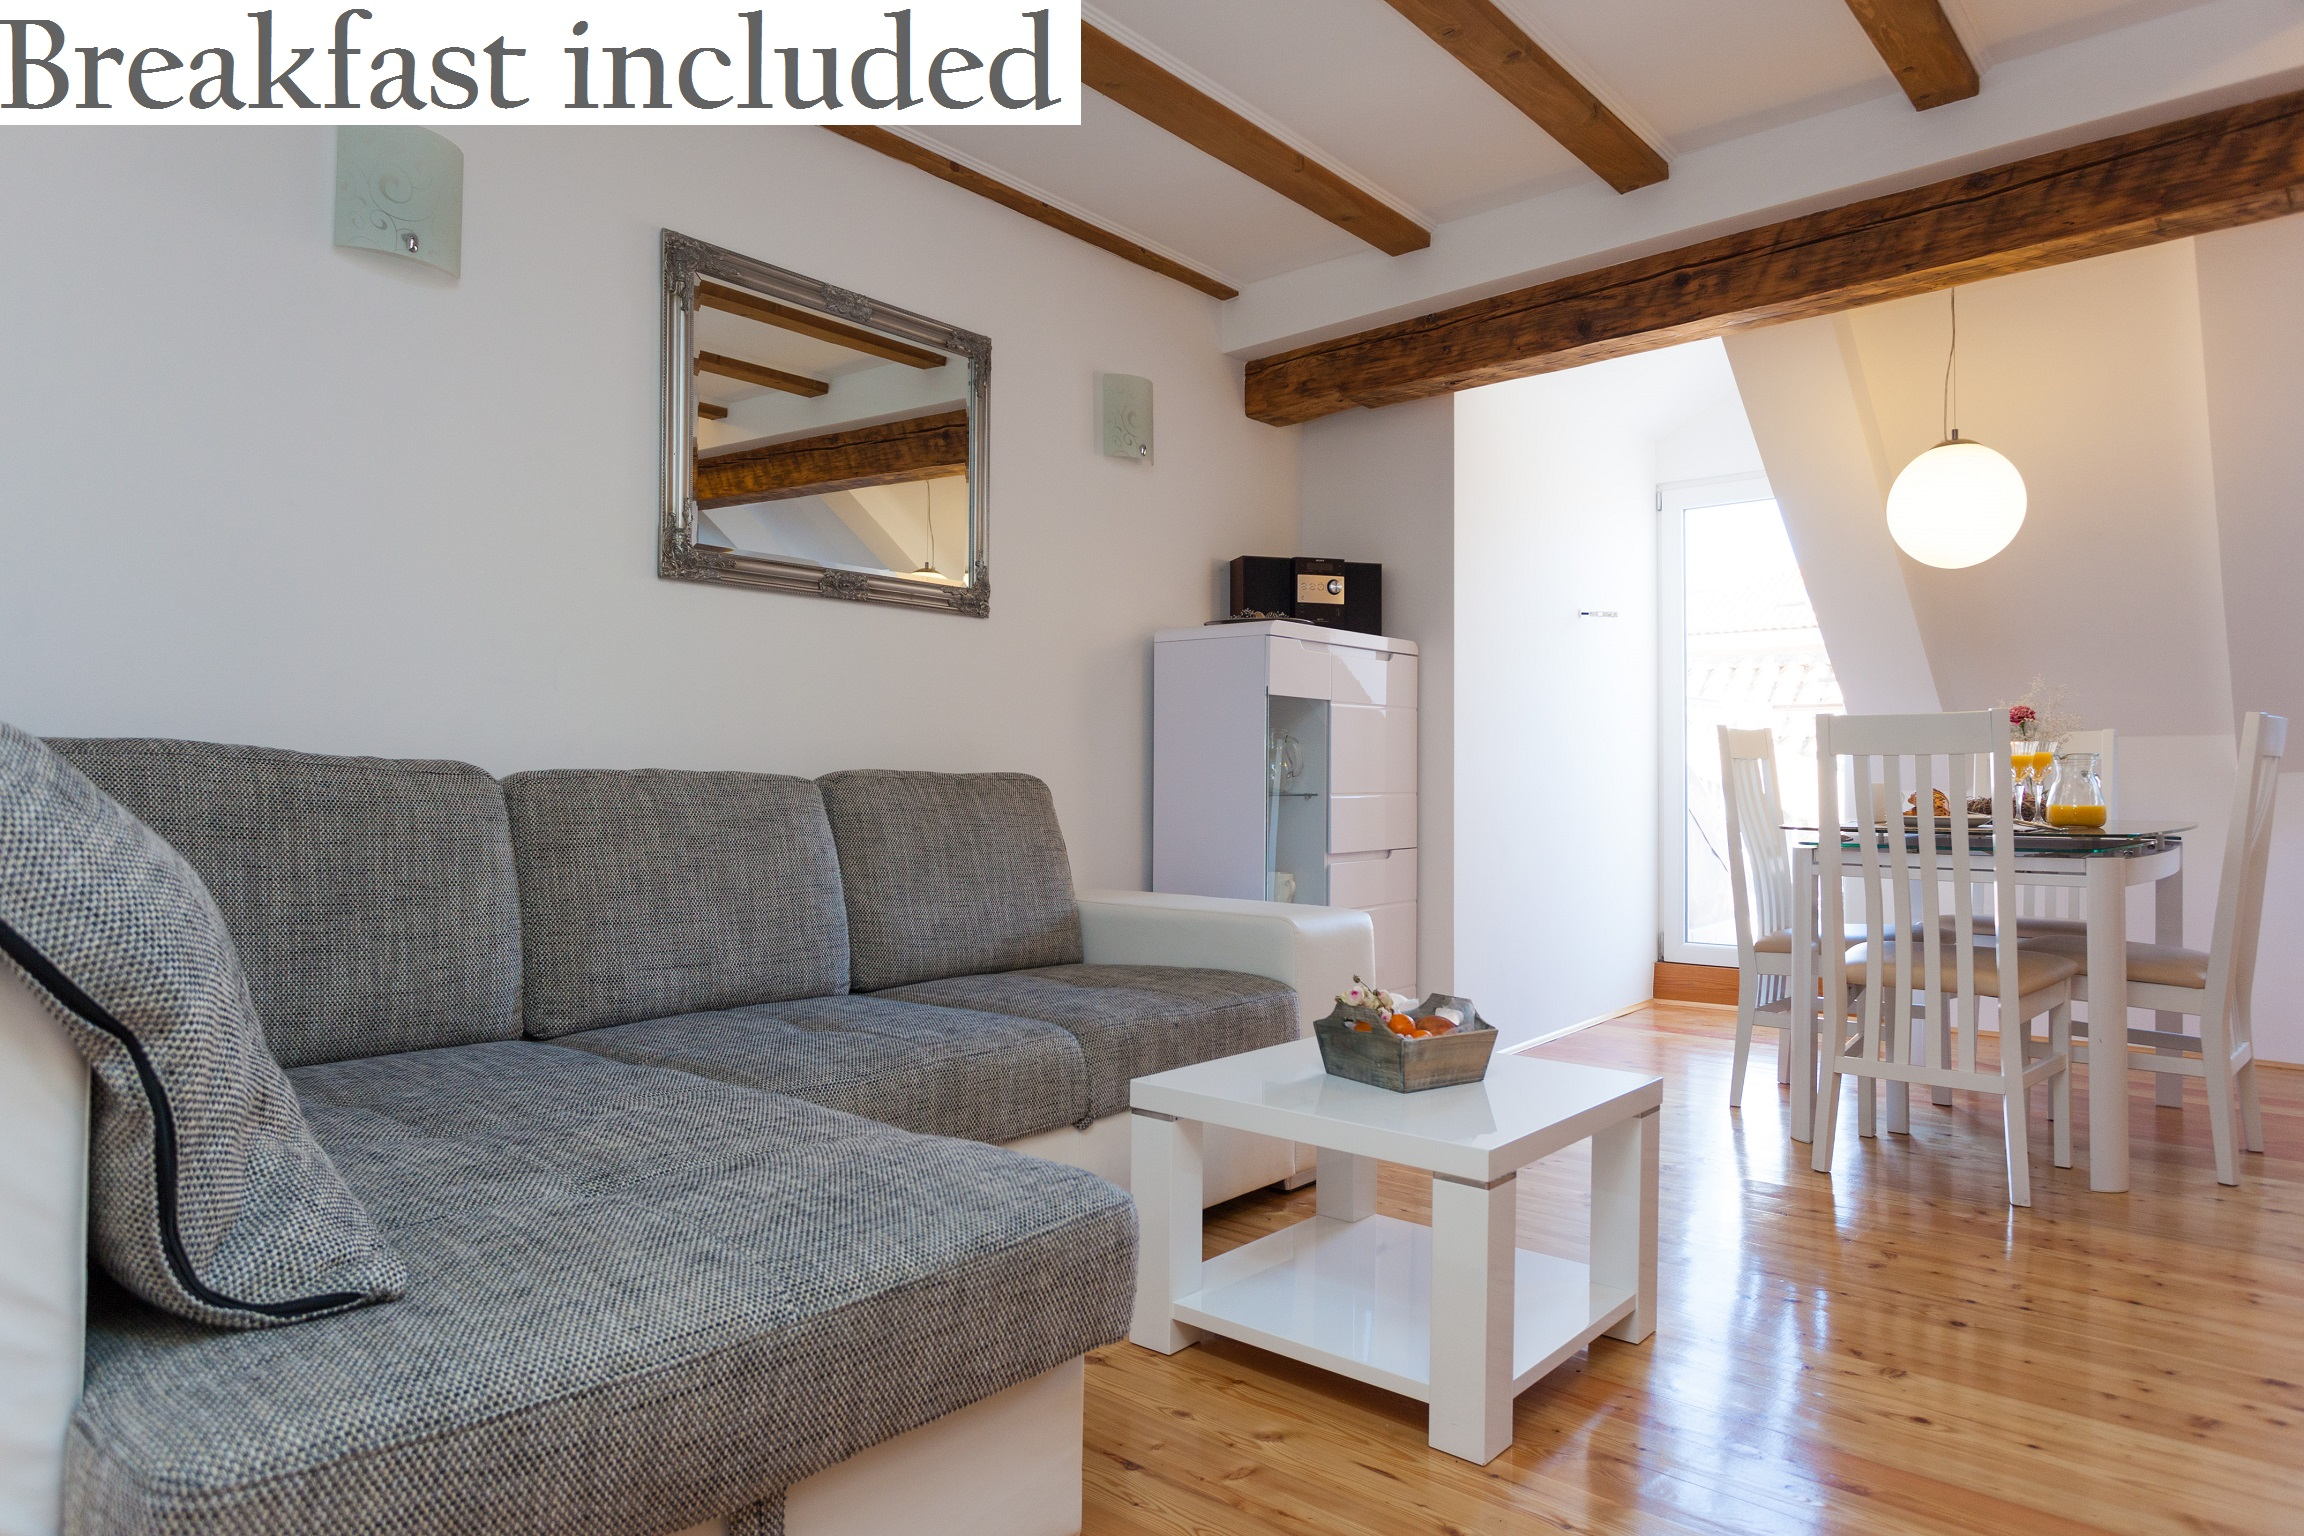 <p>Sleeps 2 (+2)<br />1 bedroom<br />1 bathroom<br />Living room with double sofa bed<br />Kitchen and dinning area<br />1 small balcony<br />Located in the Old town</p>